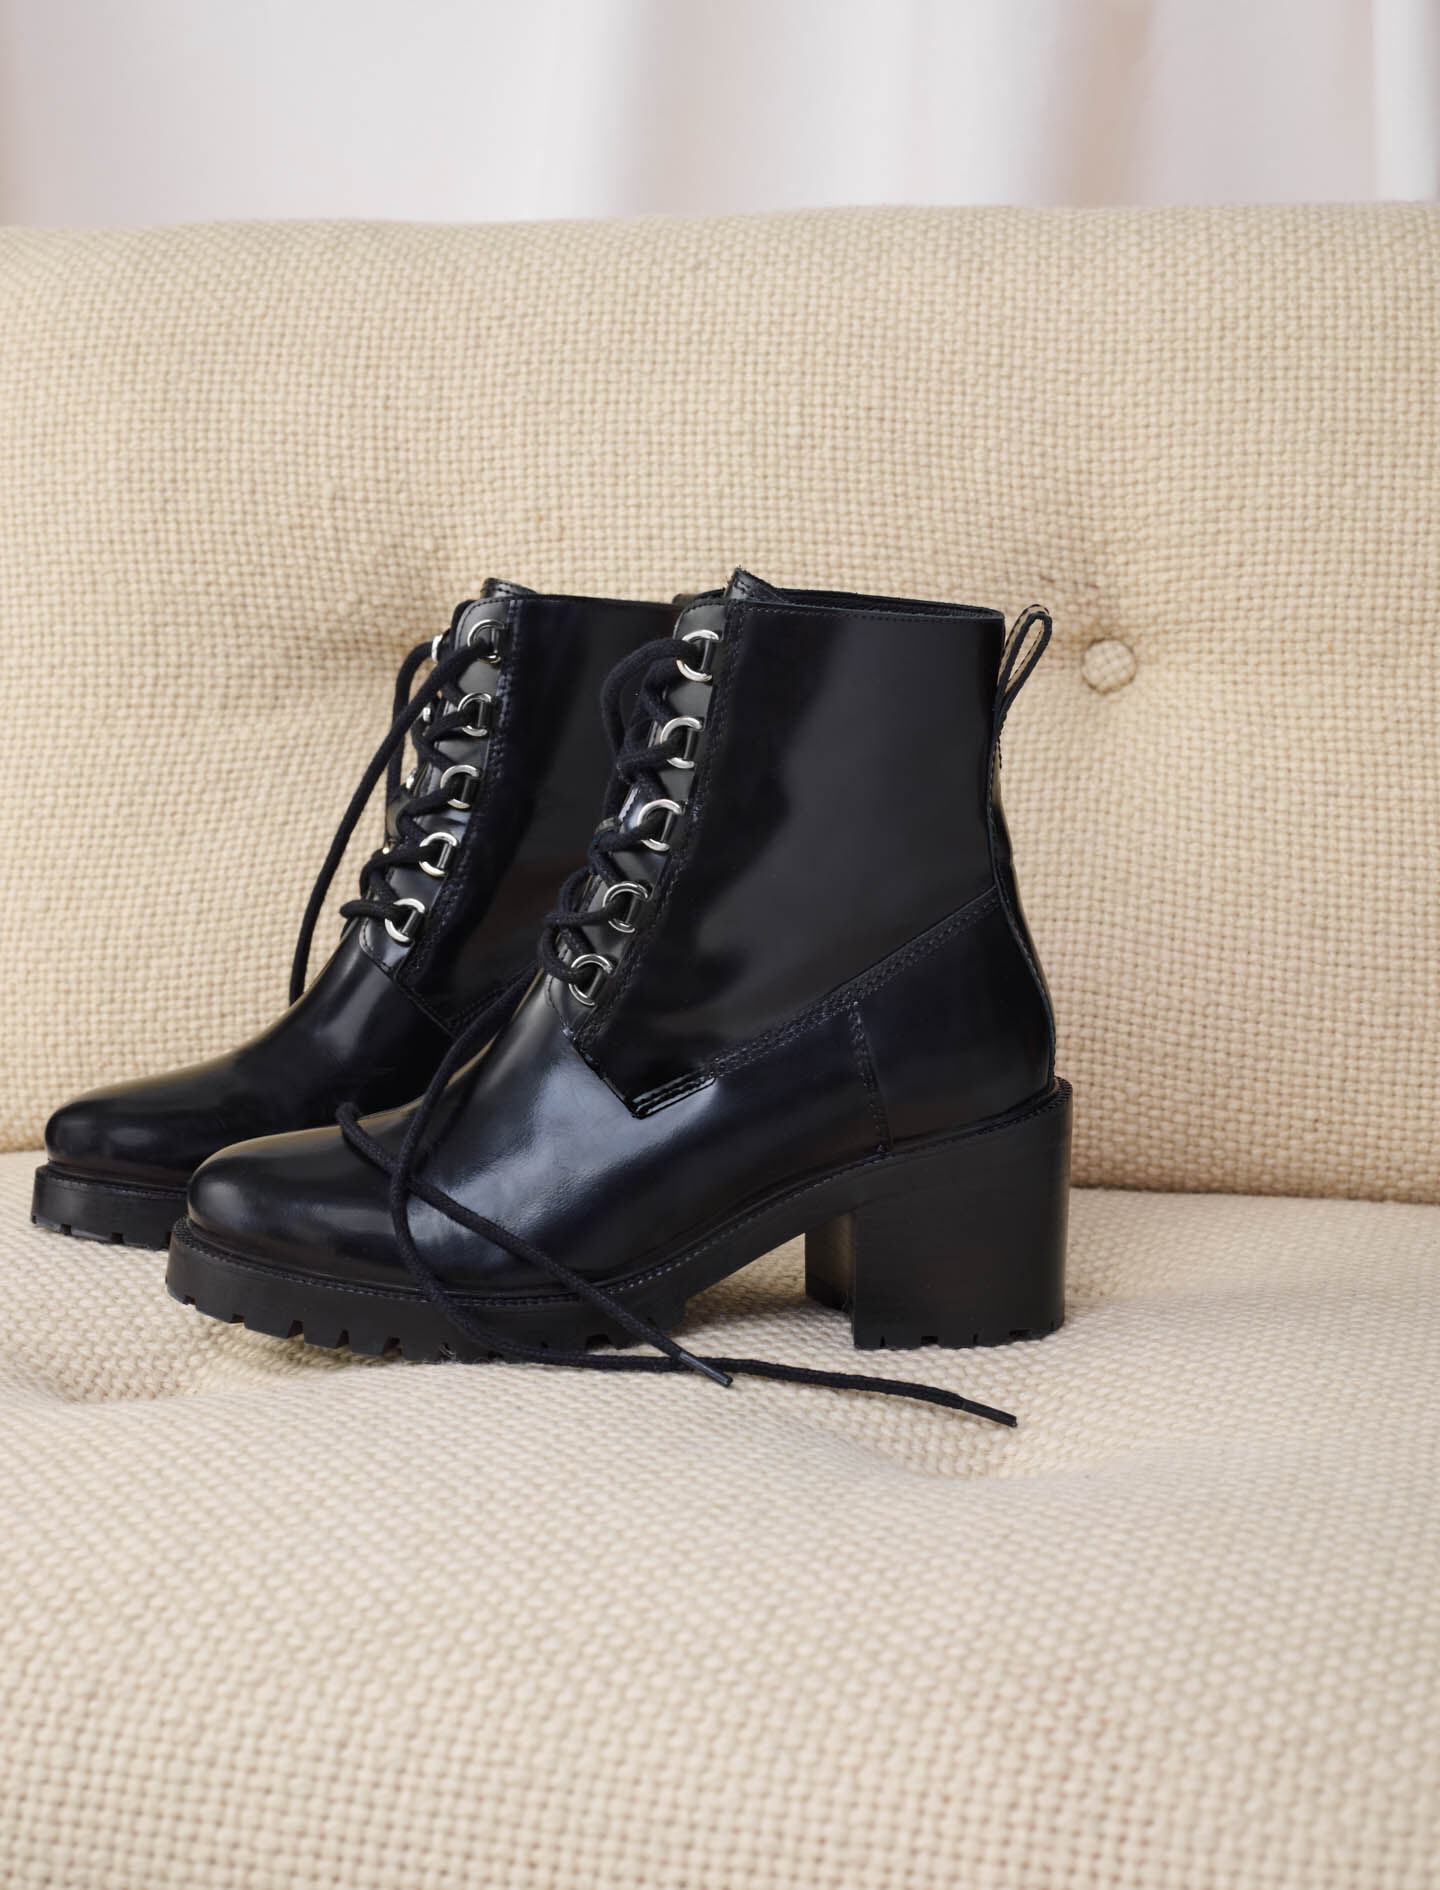 120FACTORY Black leather heeled boots